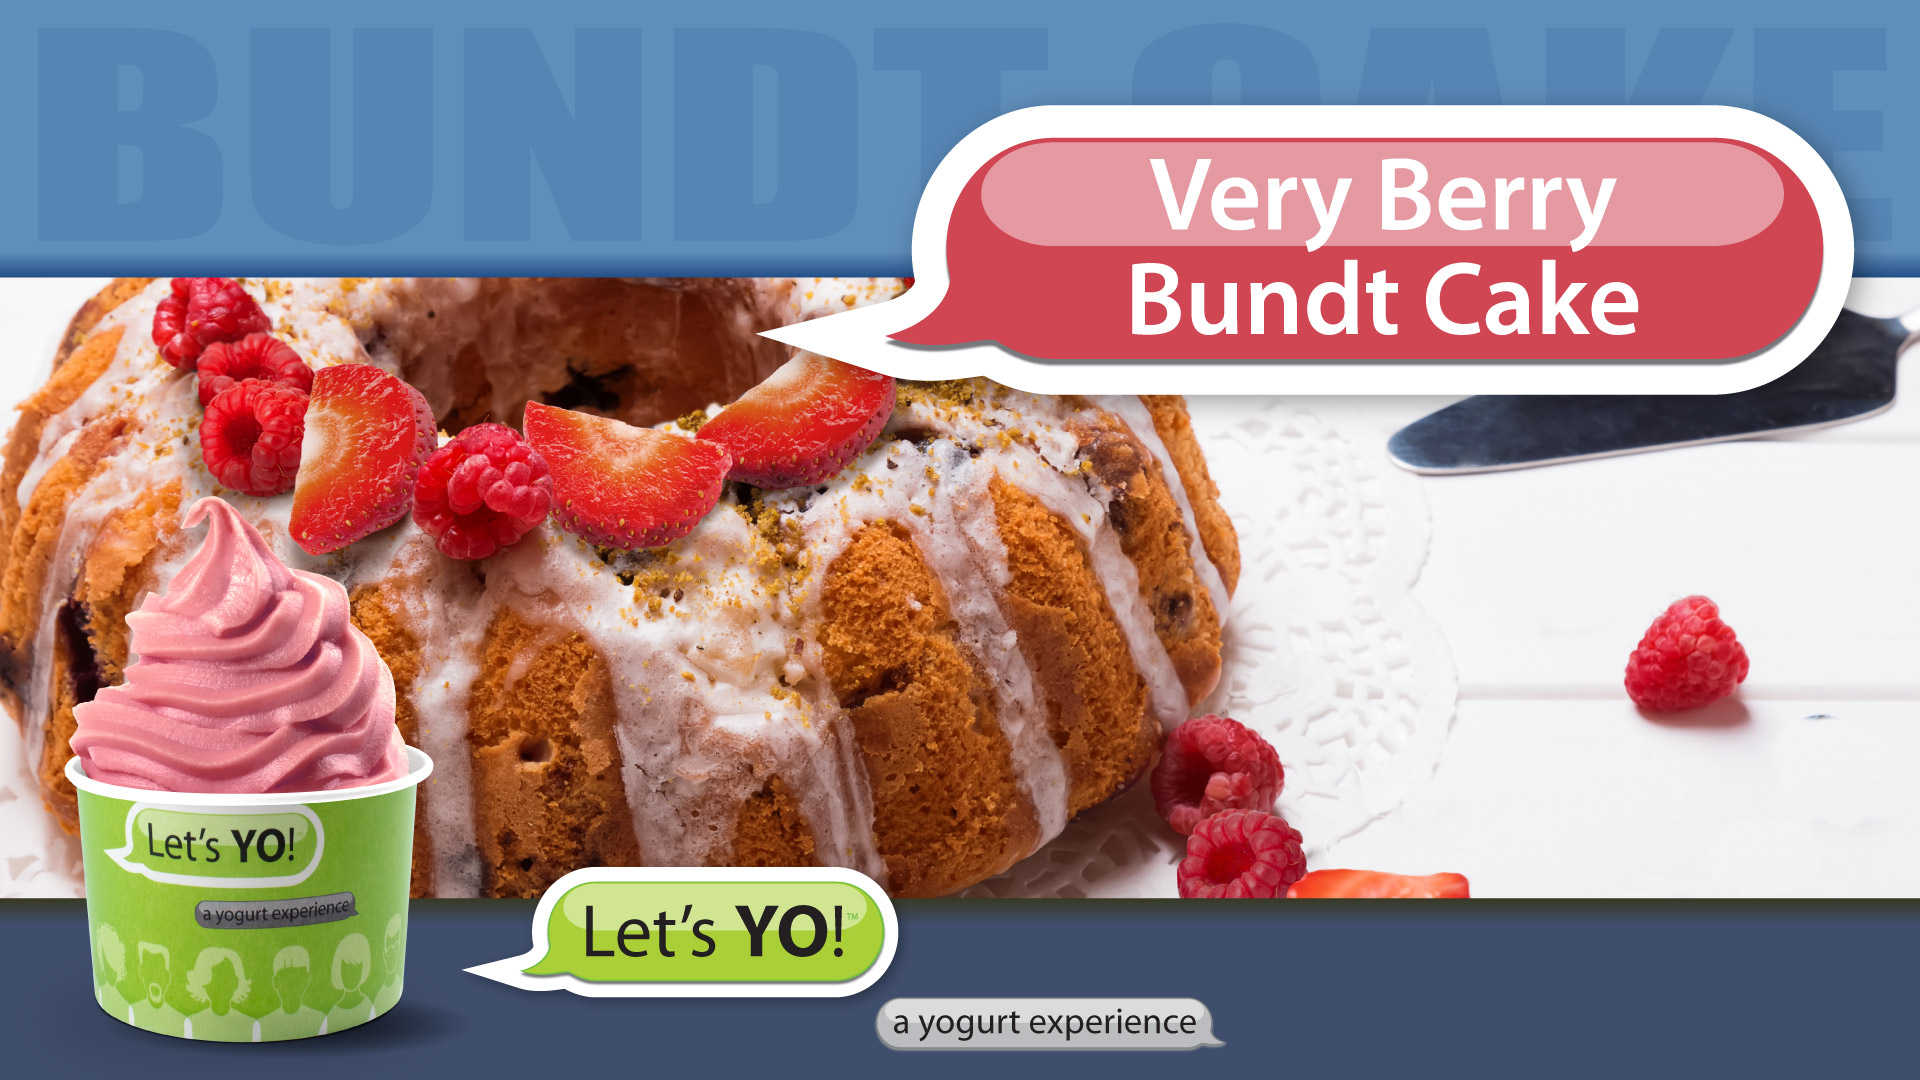 branded cup of yogurt with berries and a bunt cake